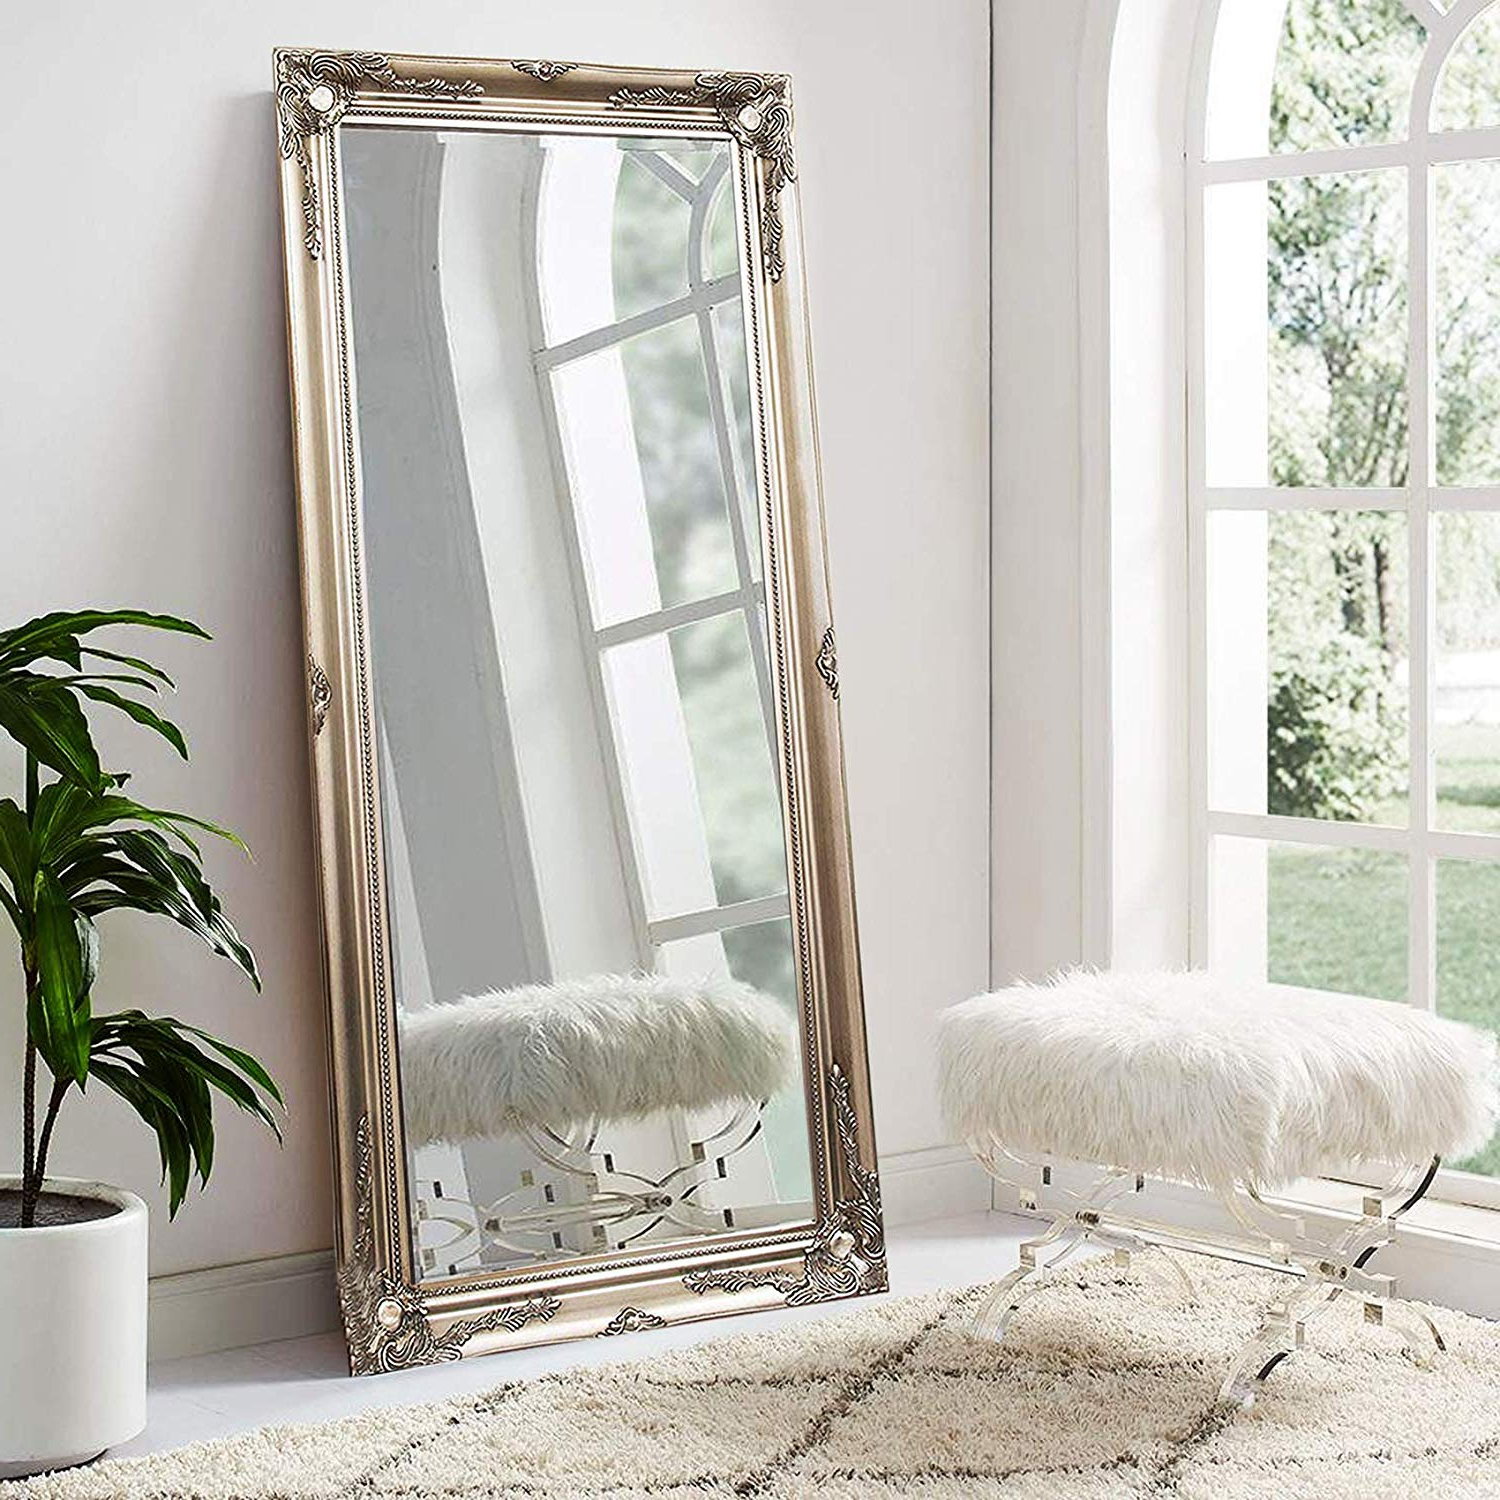 X Large Wall Mirrors Inside Most Recently Released Fb Funkybuys® Modern Large Sliver Antique Wall Mirror Shabby Chic Full  Length Leaner Vintage Style Floor Mirror (X Large:75 X 105Cm) (View 18 of 20)